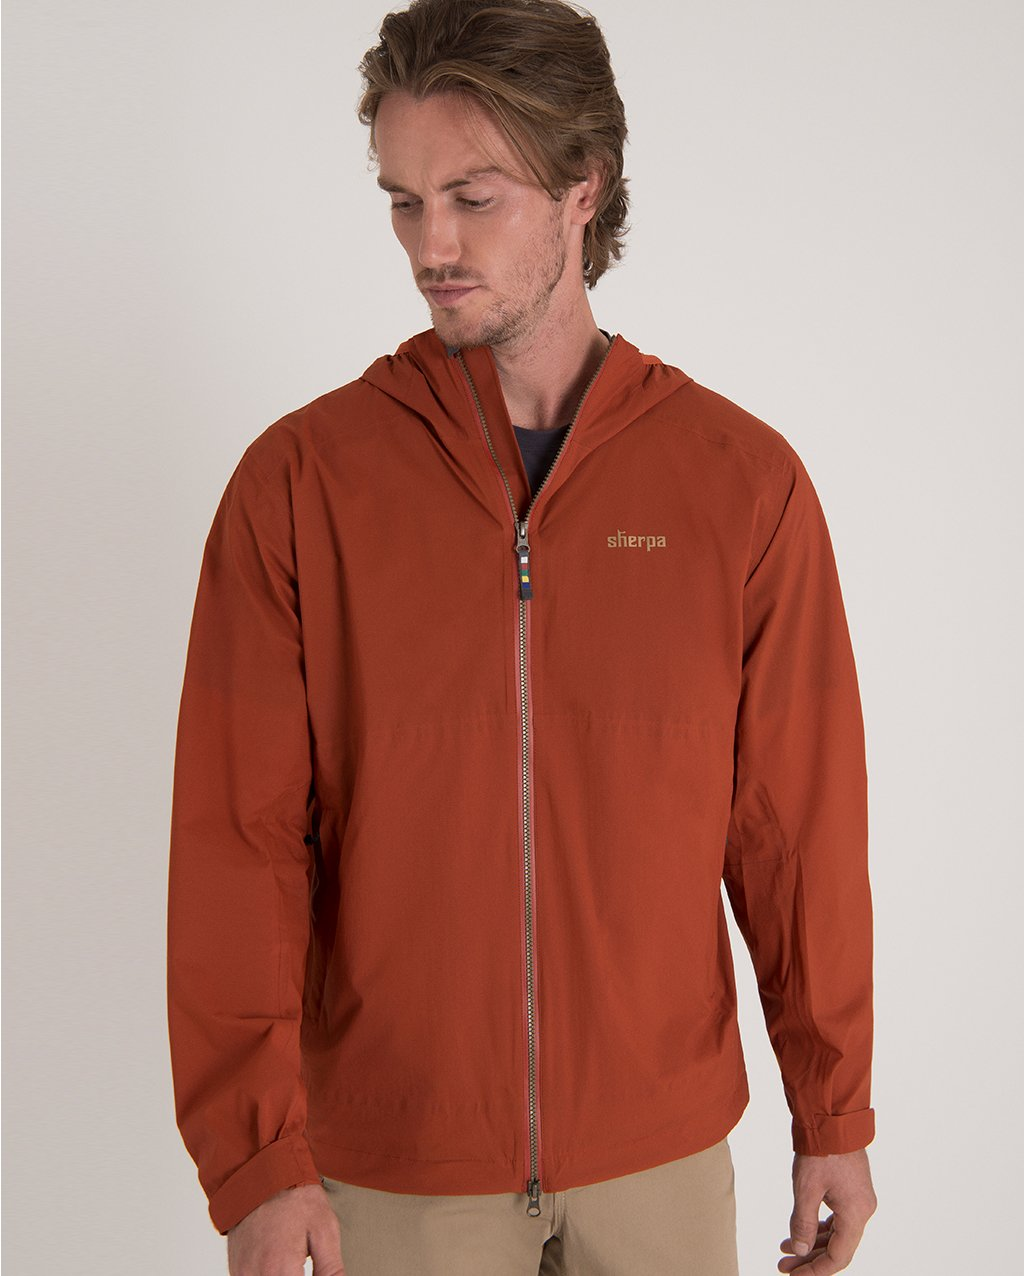 Sherpa Men's Asaar Waterproof 2.5 Layer Jacket